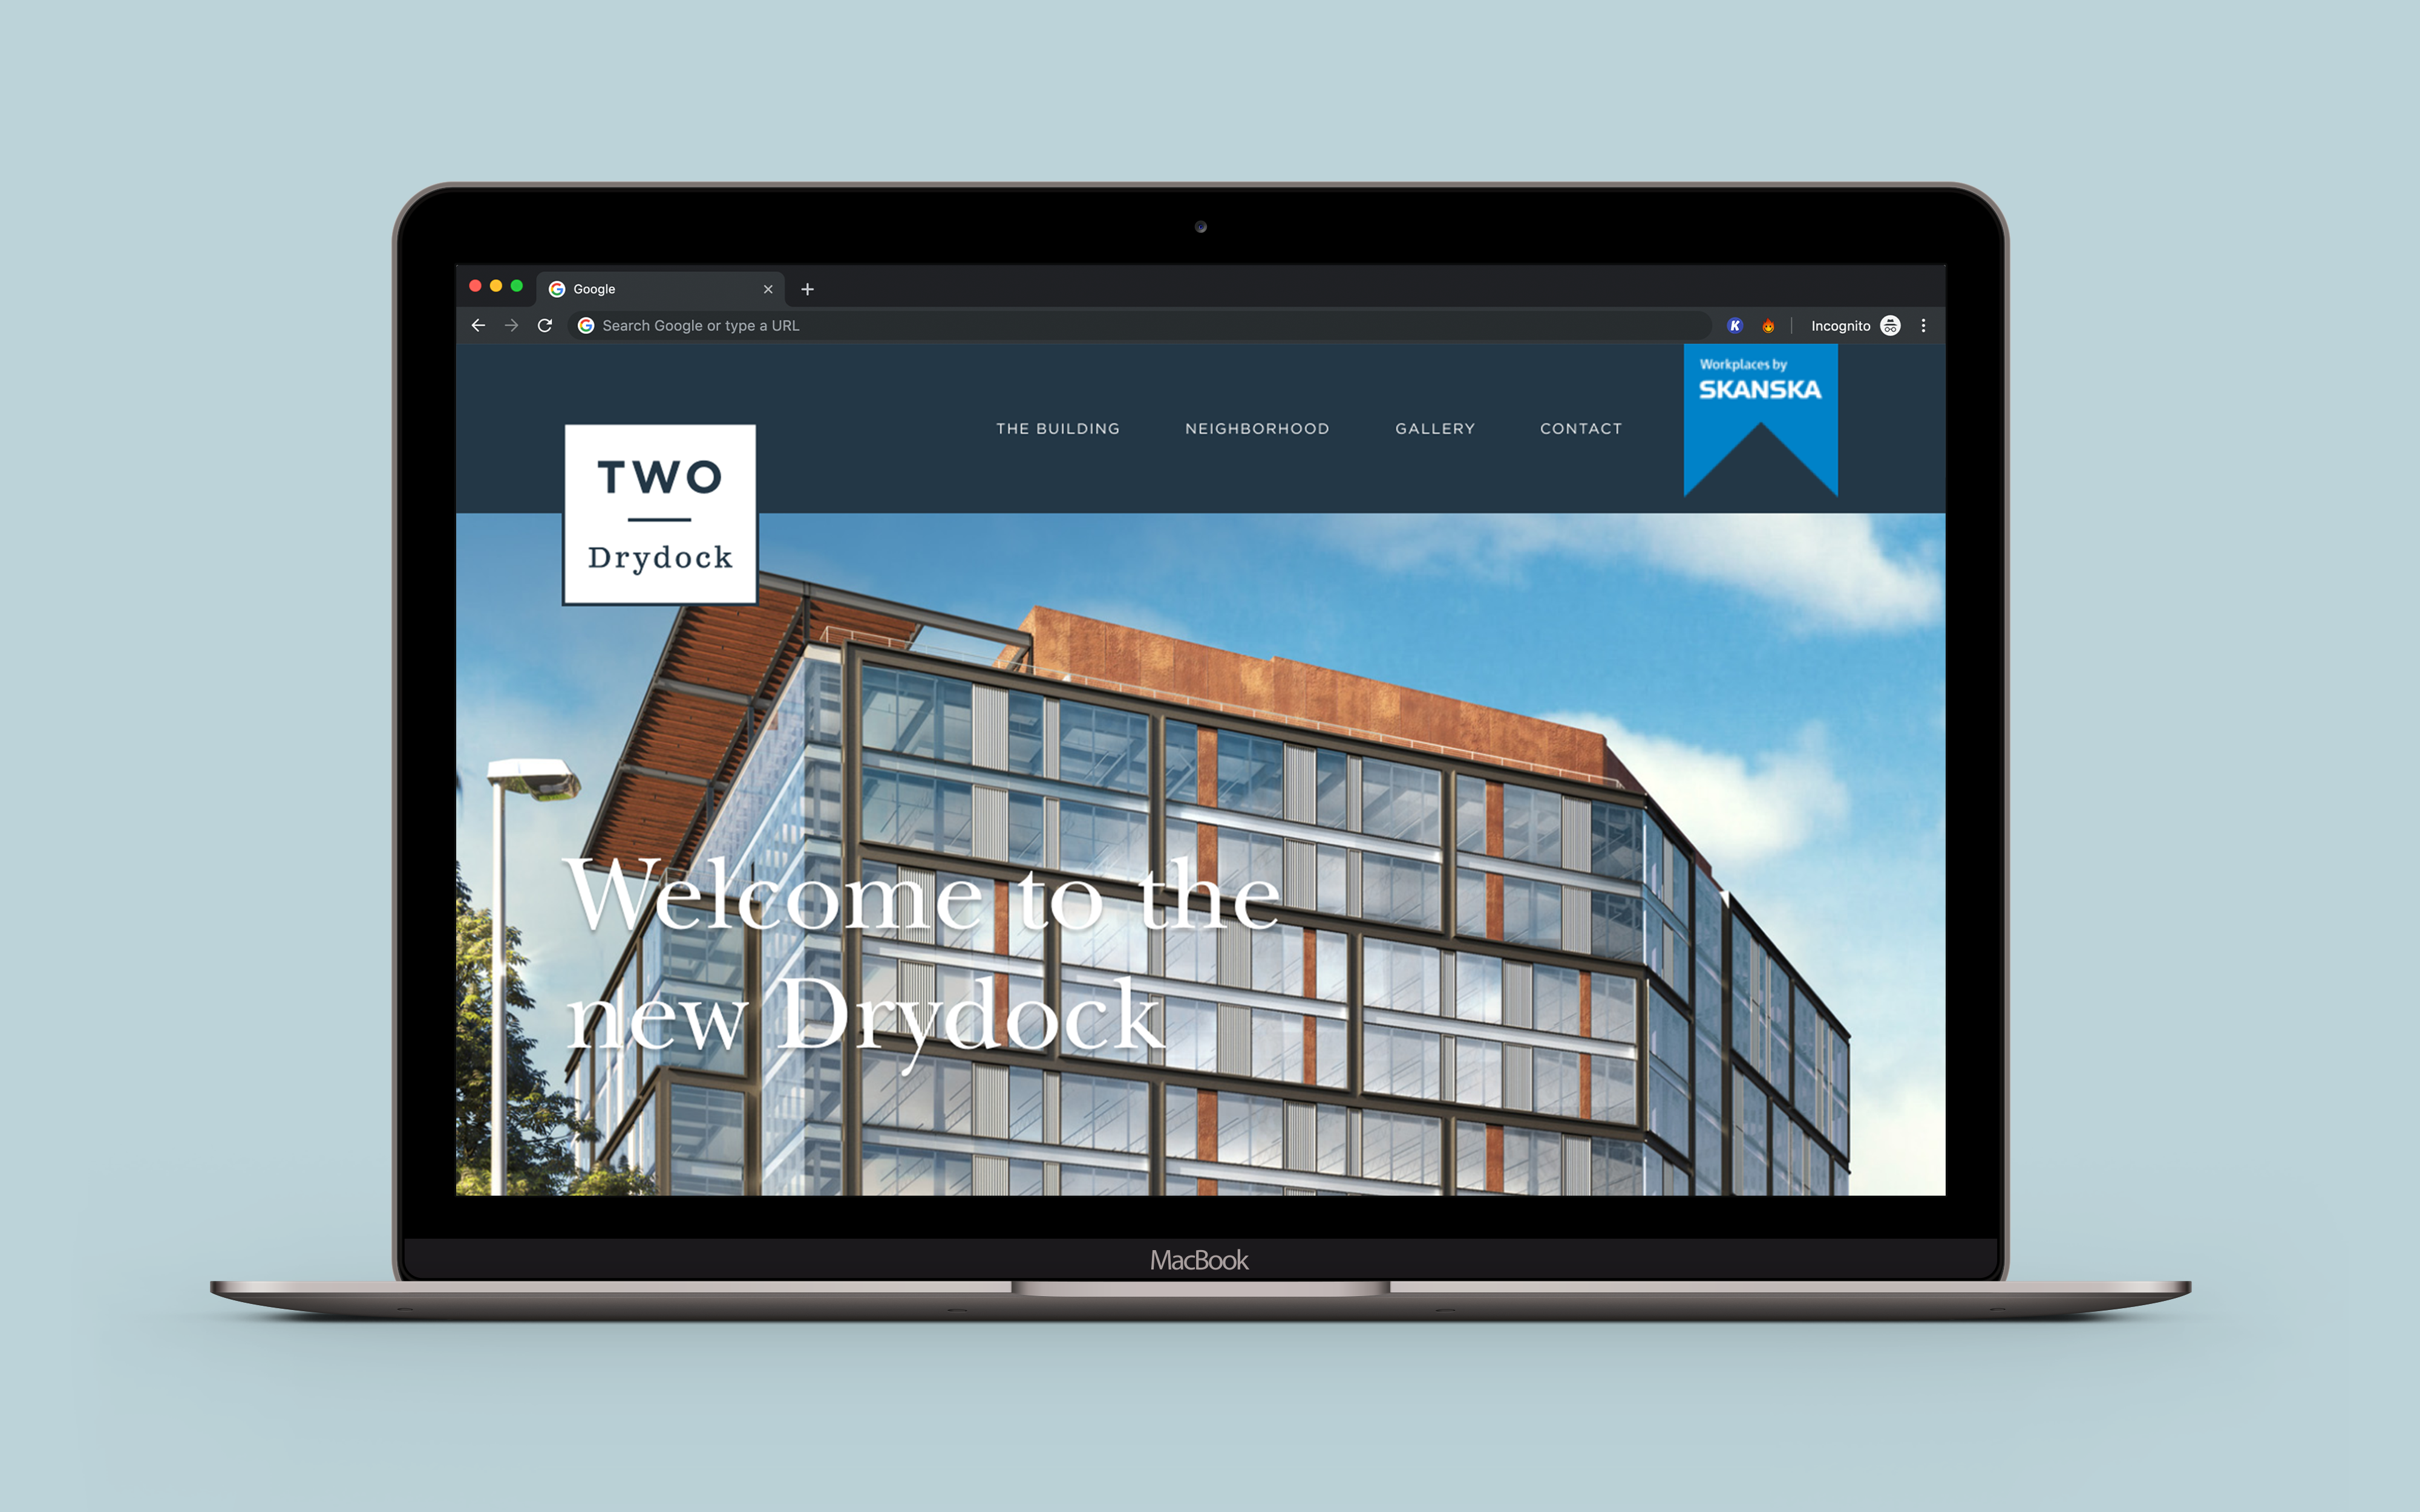 Two Drydock website cover image